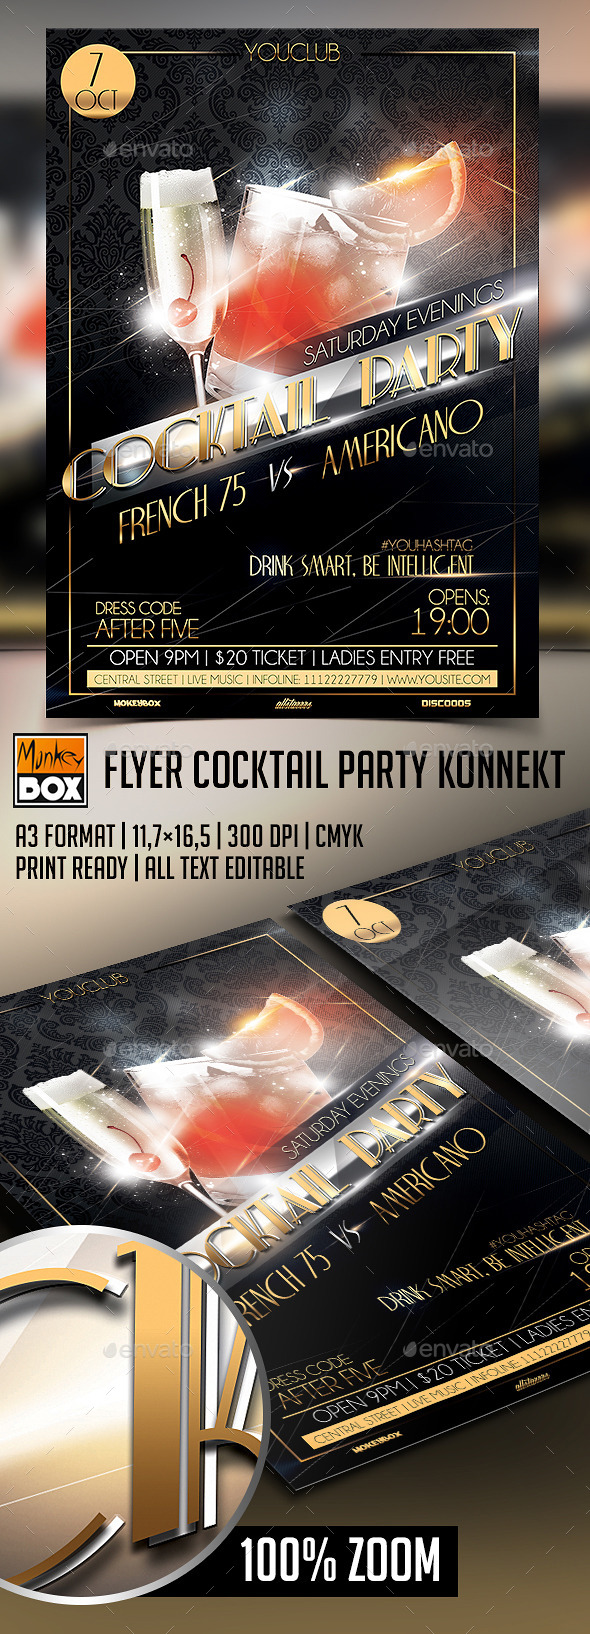 Flyer Cocktail Party